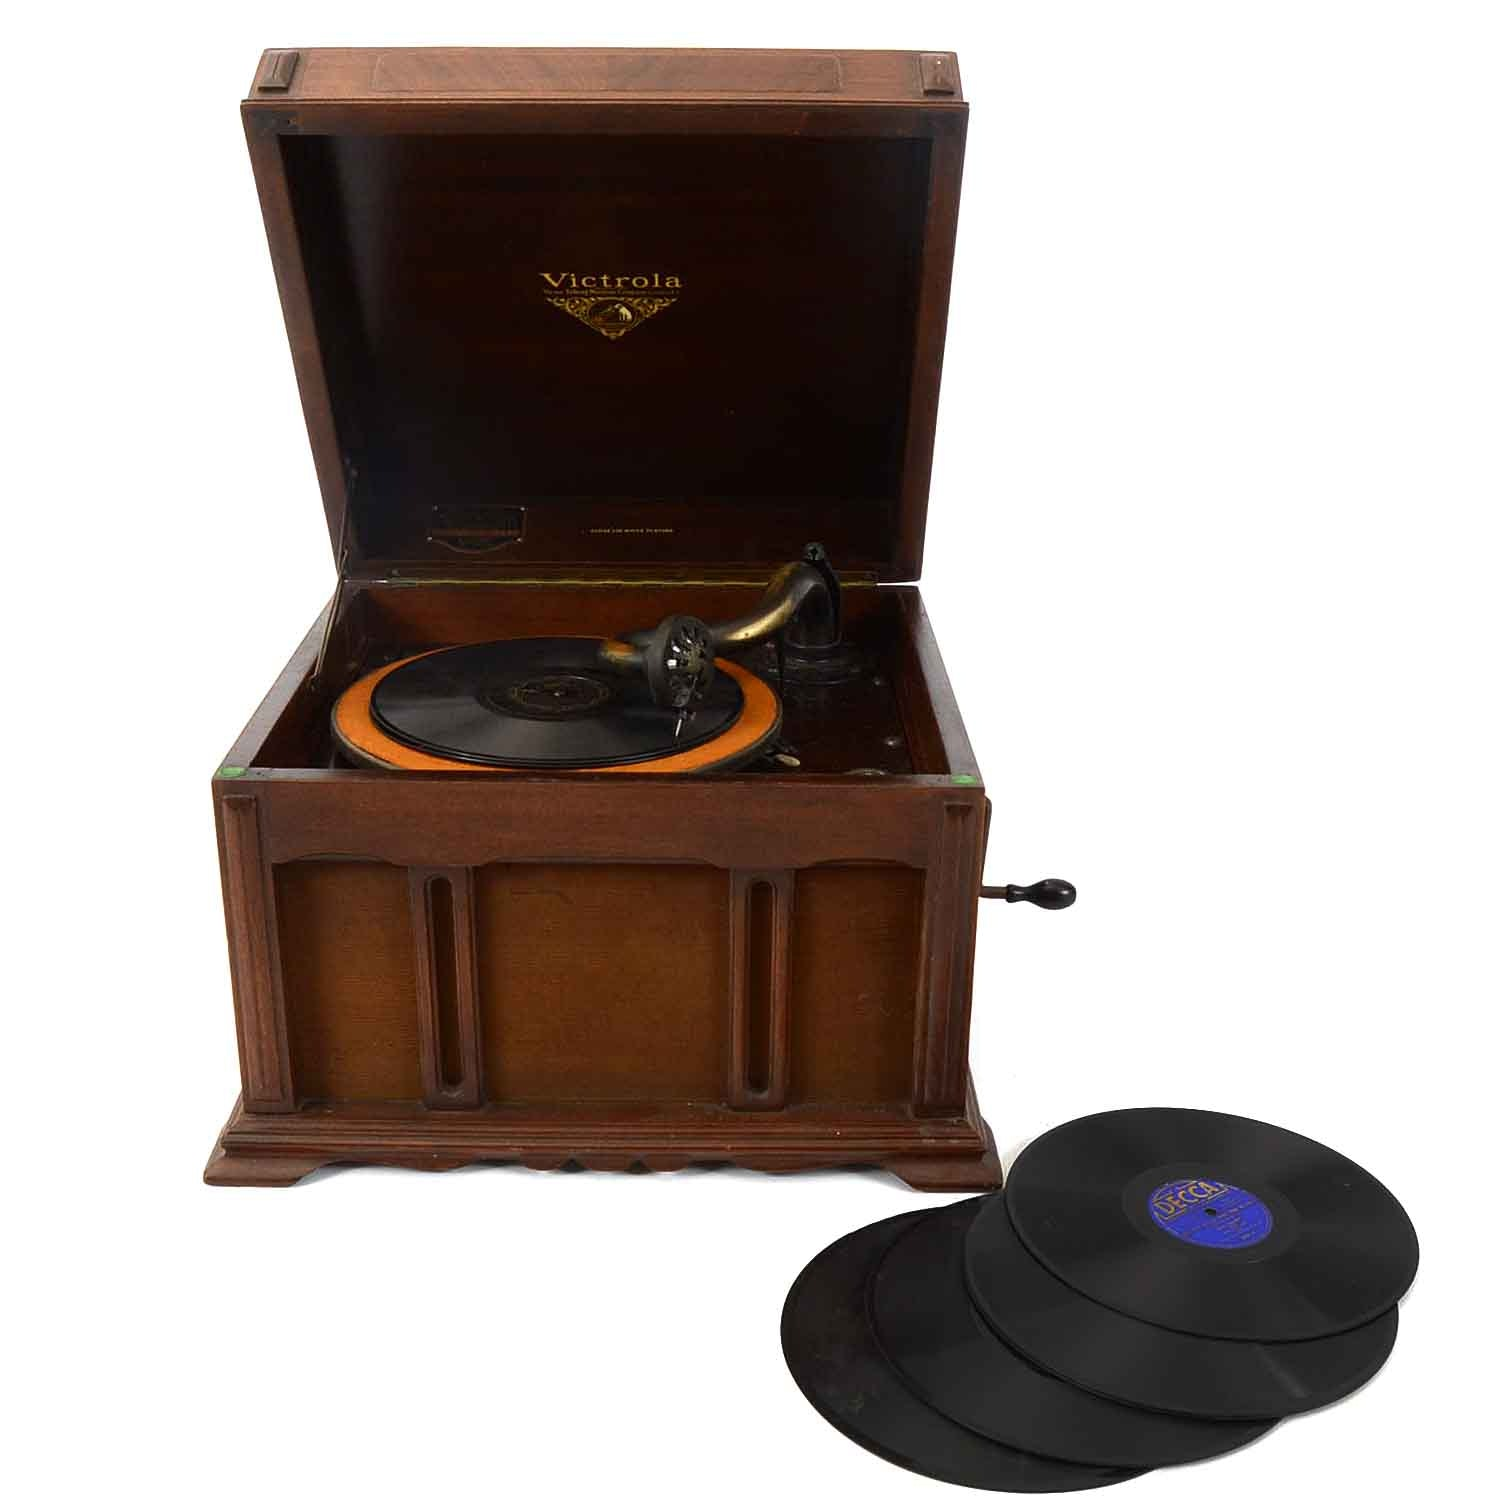 Vintage Victrola Phonograph and Records